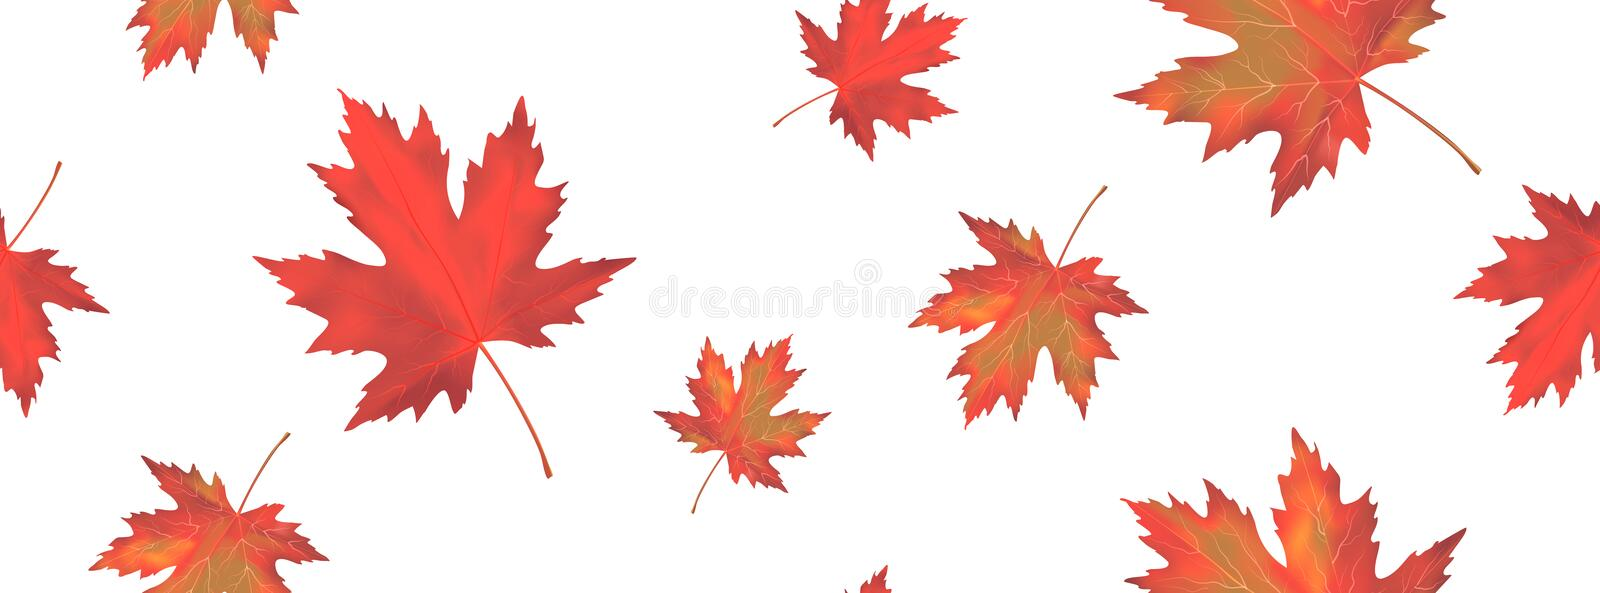 Seamless pattern with bright orange red falling maple leaves isolated on white background. Seasonal banner or holiday vintage stock illustration